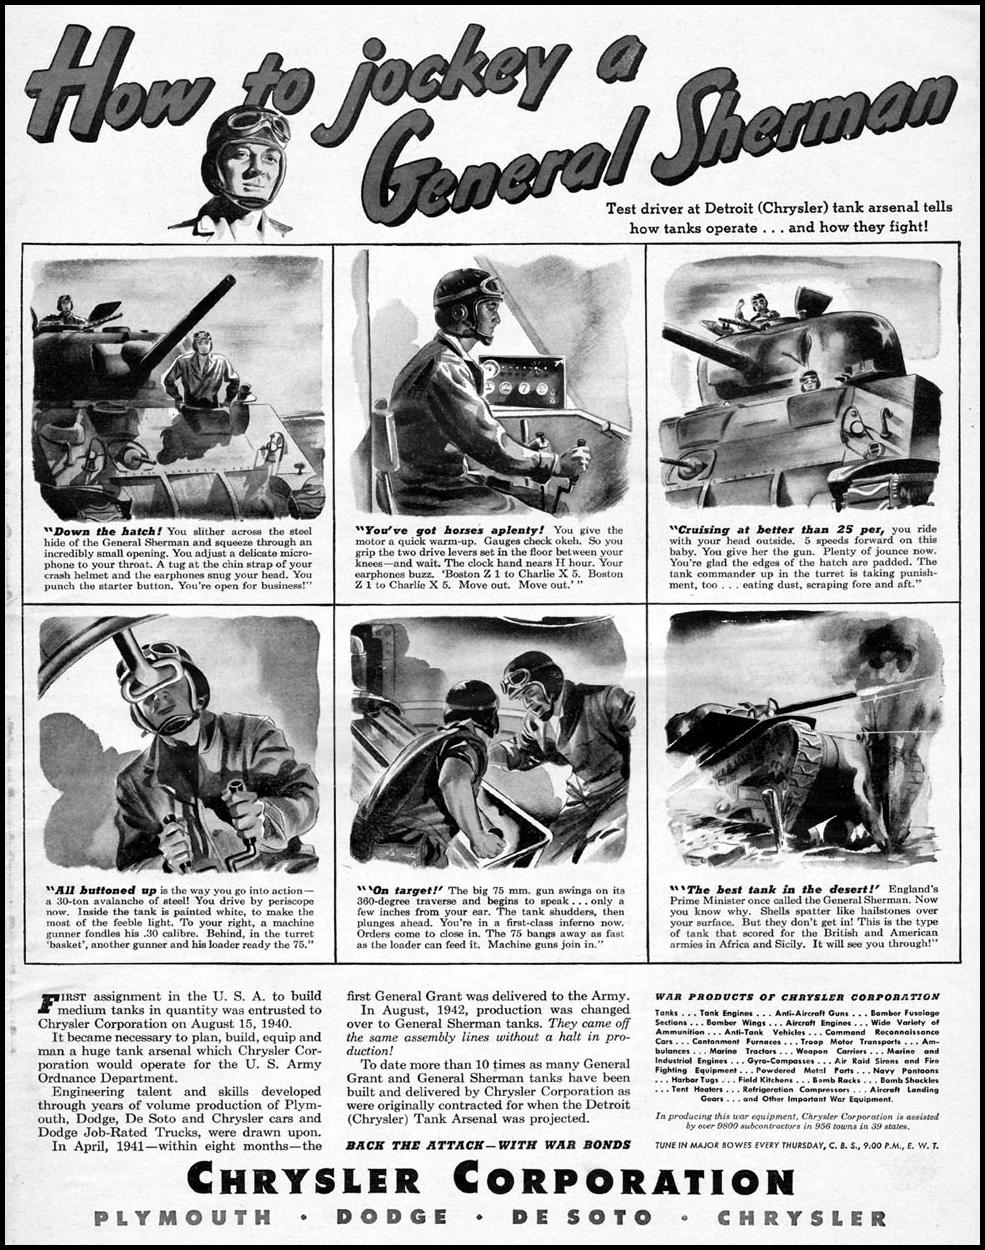 CHRYSLER WARTIME PRODUCTION LIFE 10/11/1943 p. 5